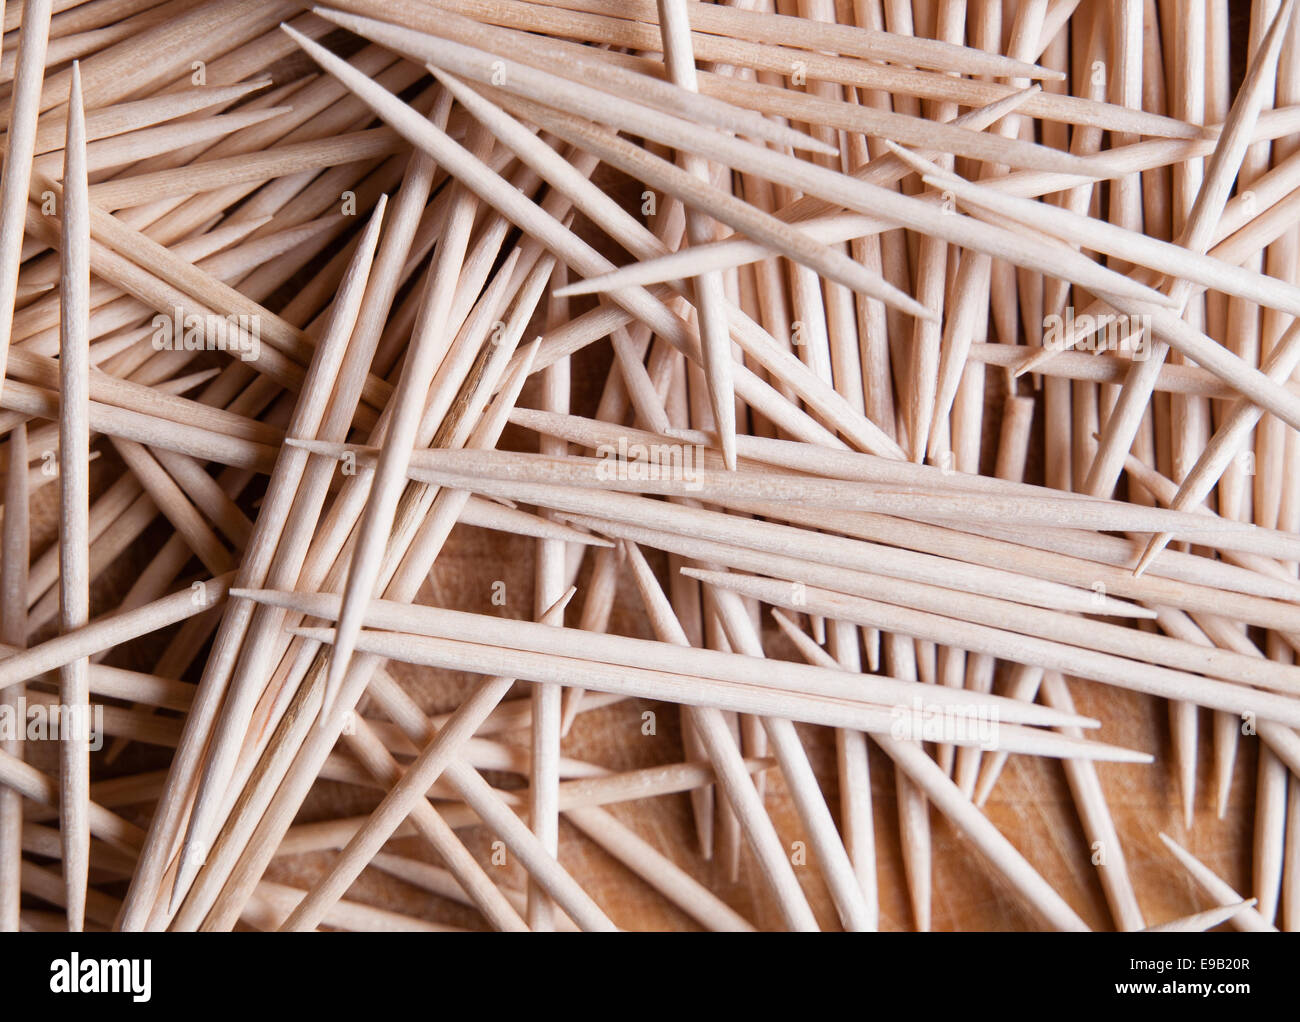 Many toothpicks in a wooden board - Stock Image